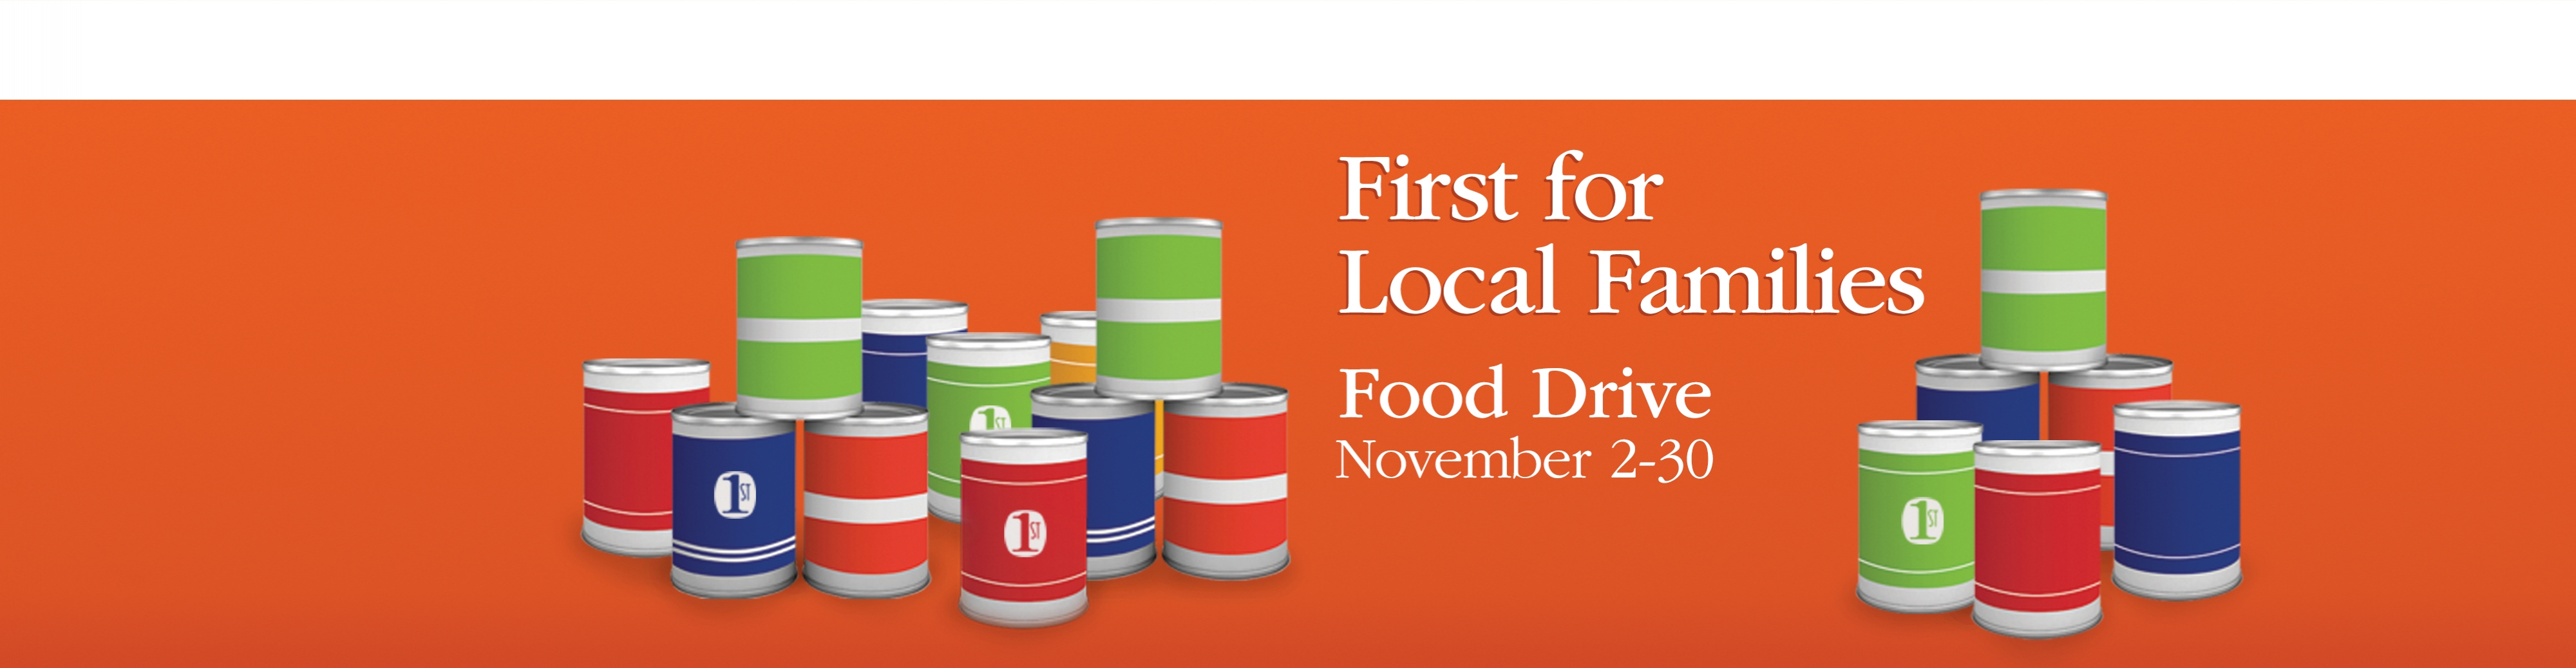 First for local families.  Food Drive November 1-29